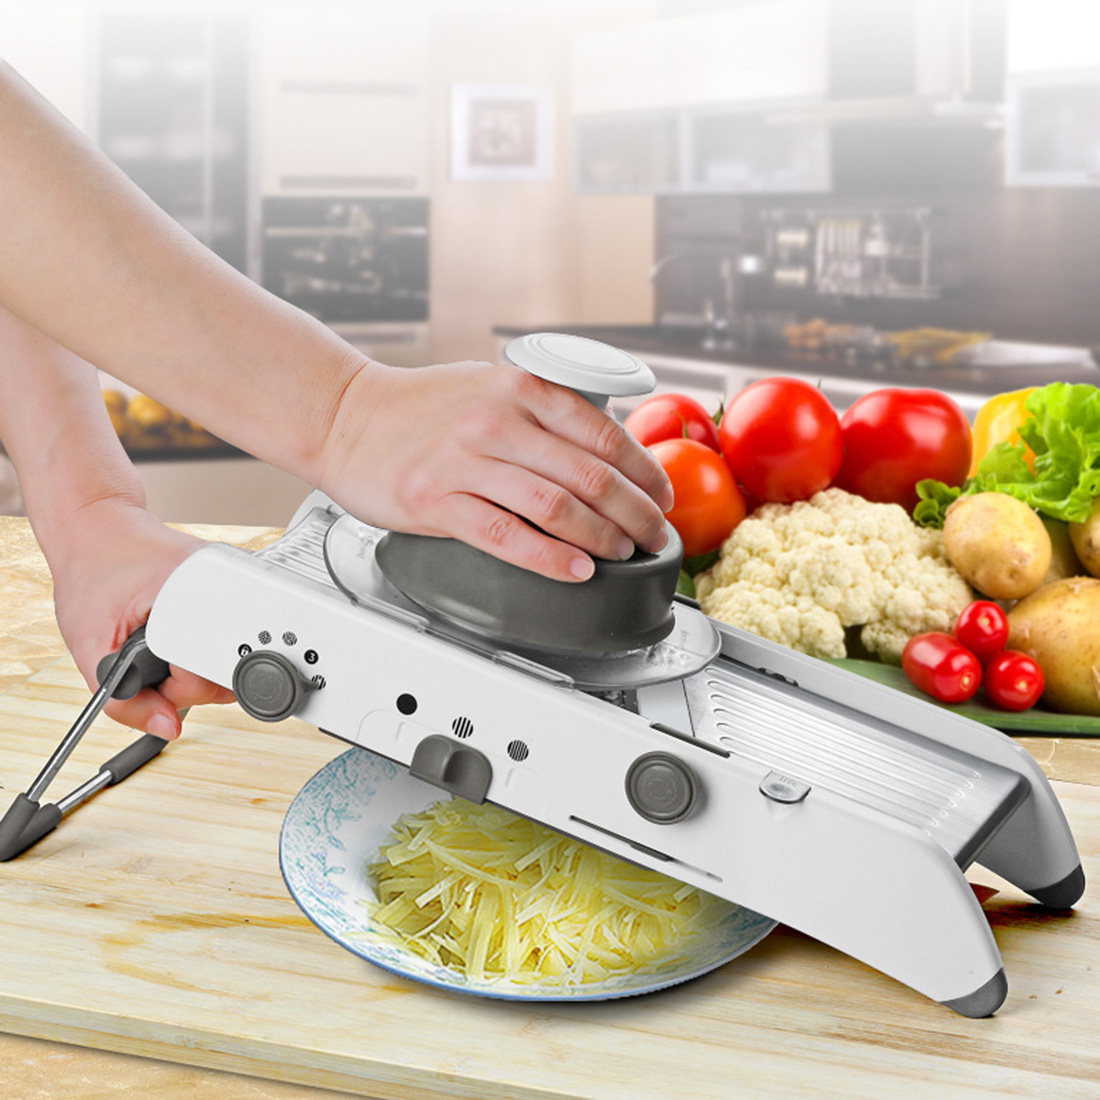 Vegetable Slicer Grater Cutting tool Shredded slice Peeler Cutter Multi function Photo Fruit Tools Kitchen Accessories